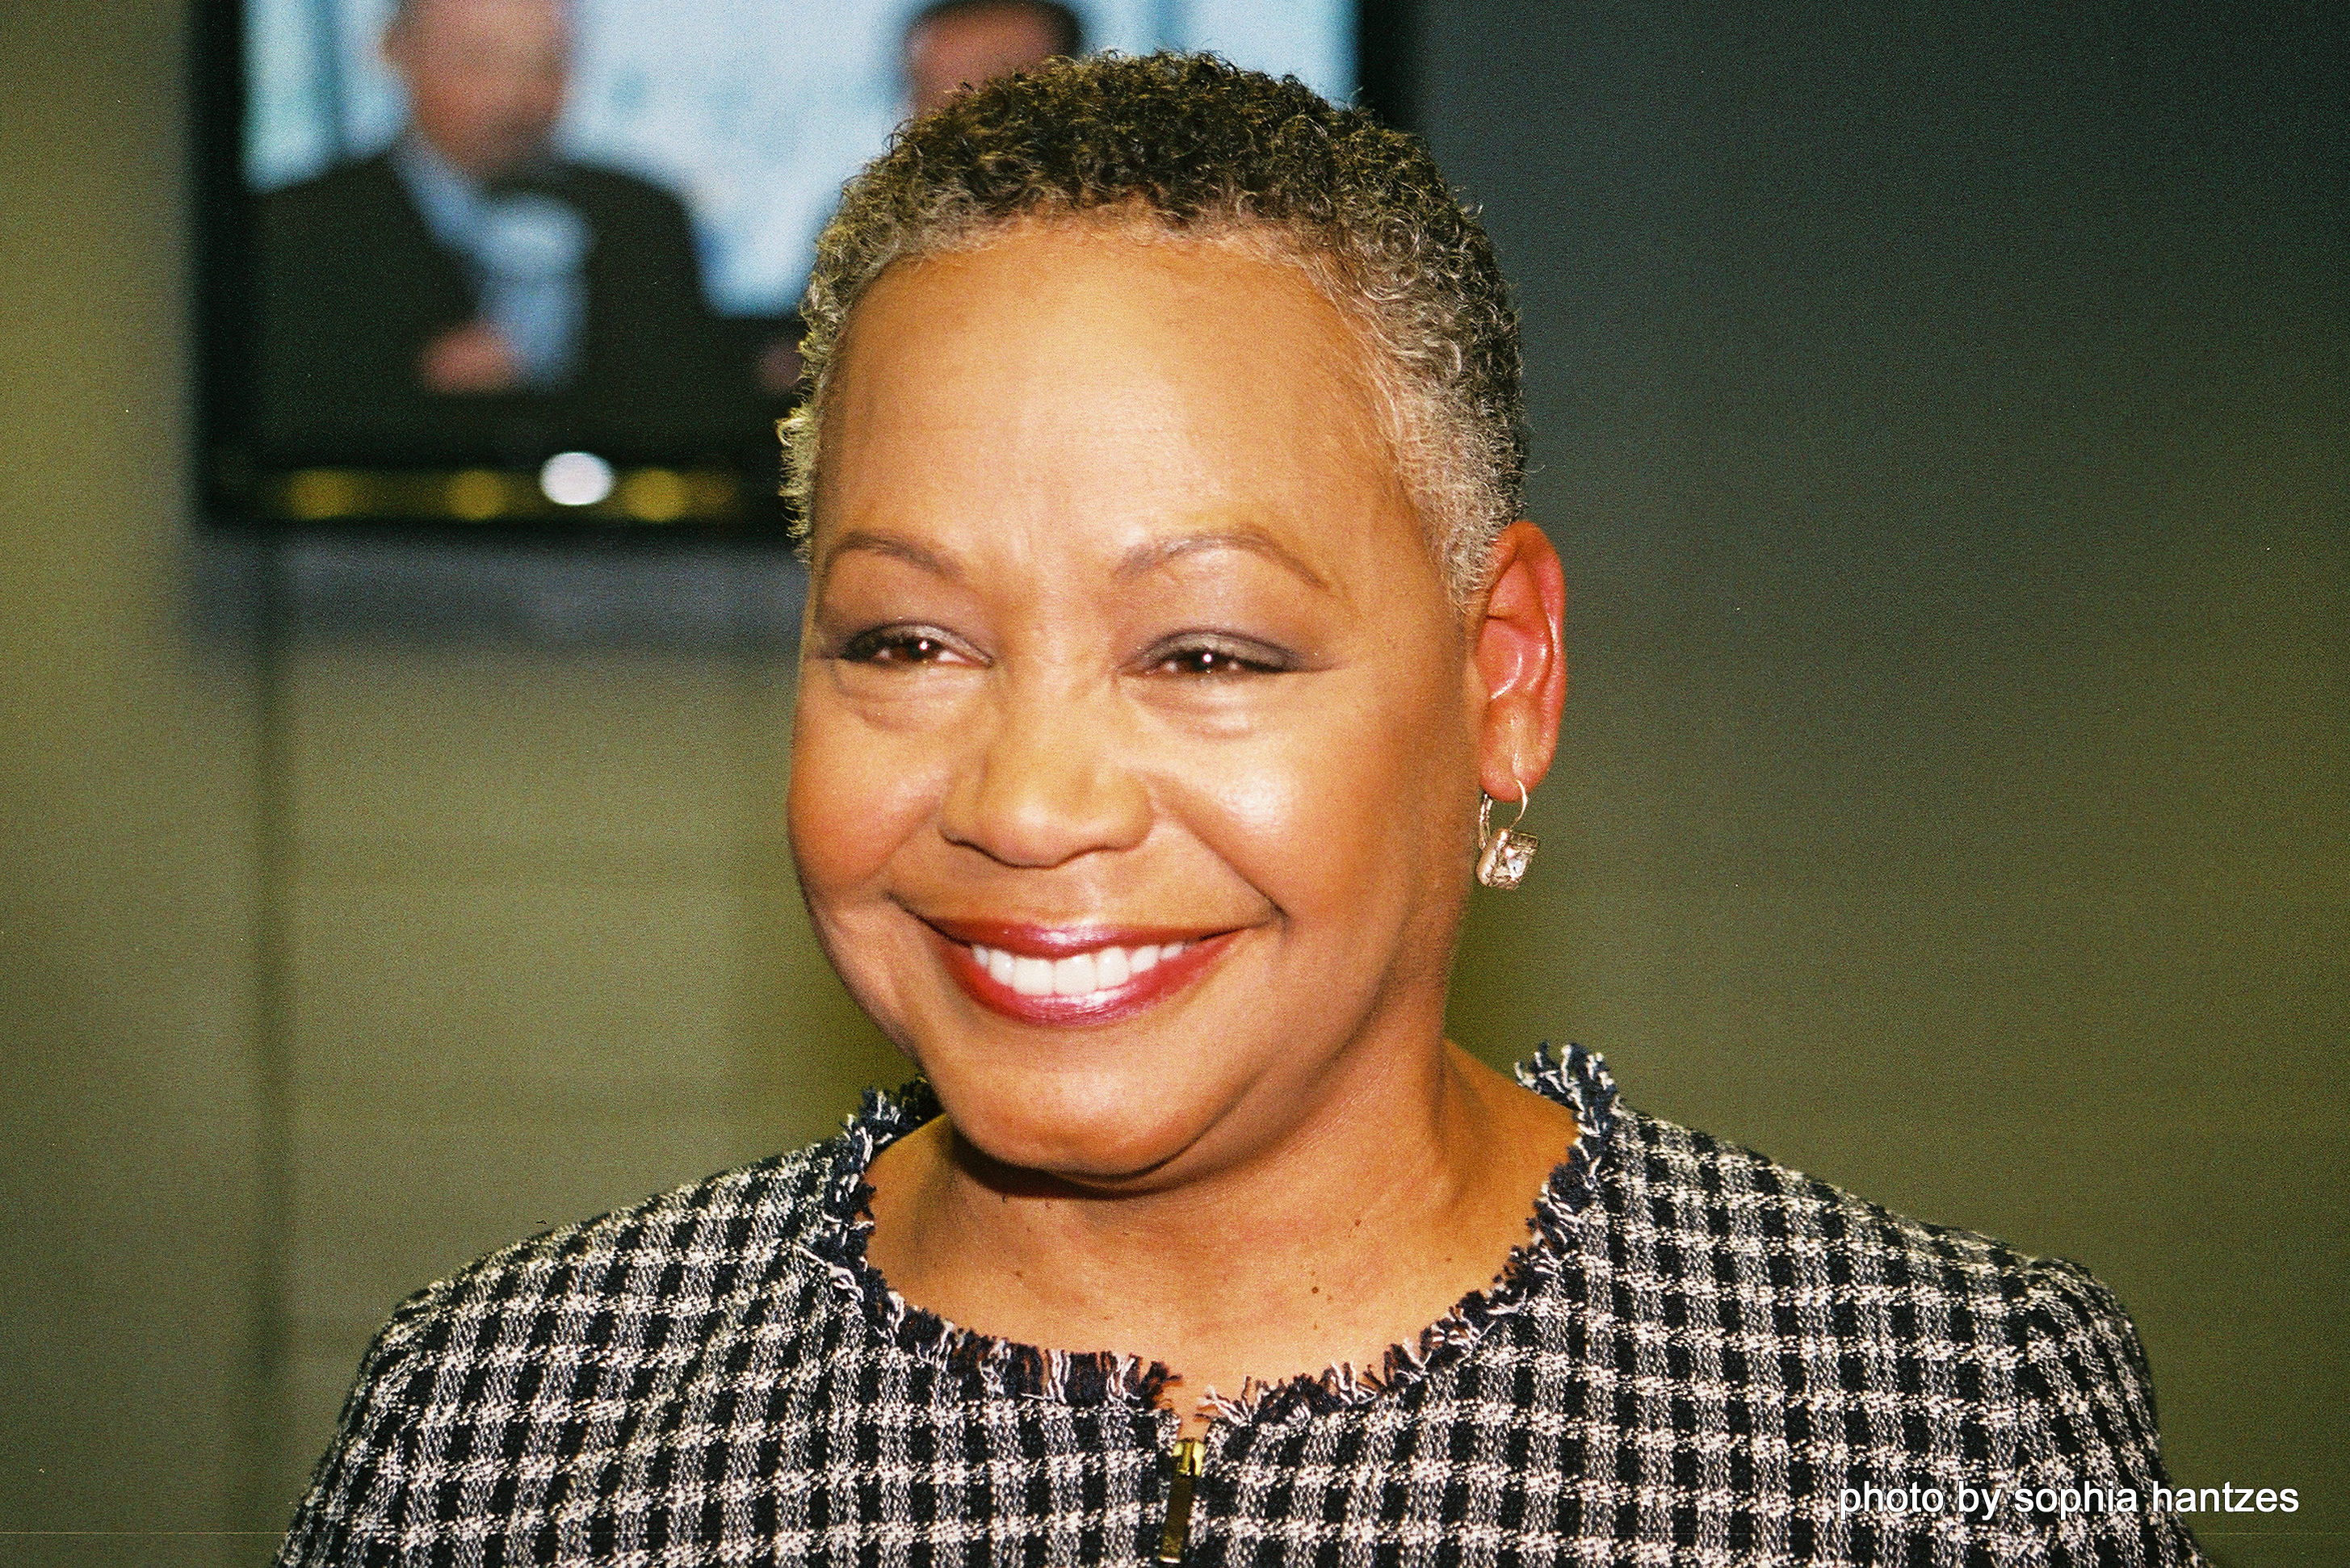 Lisa Borders (Photo by Sophia Hantzes)